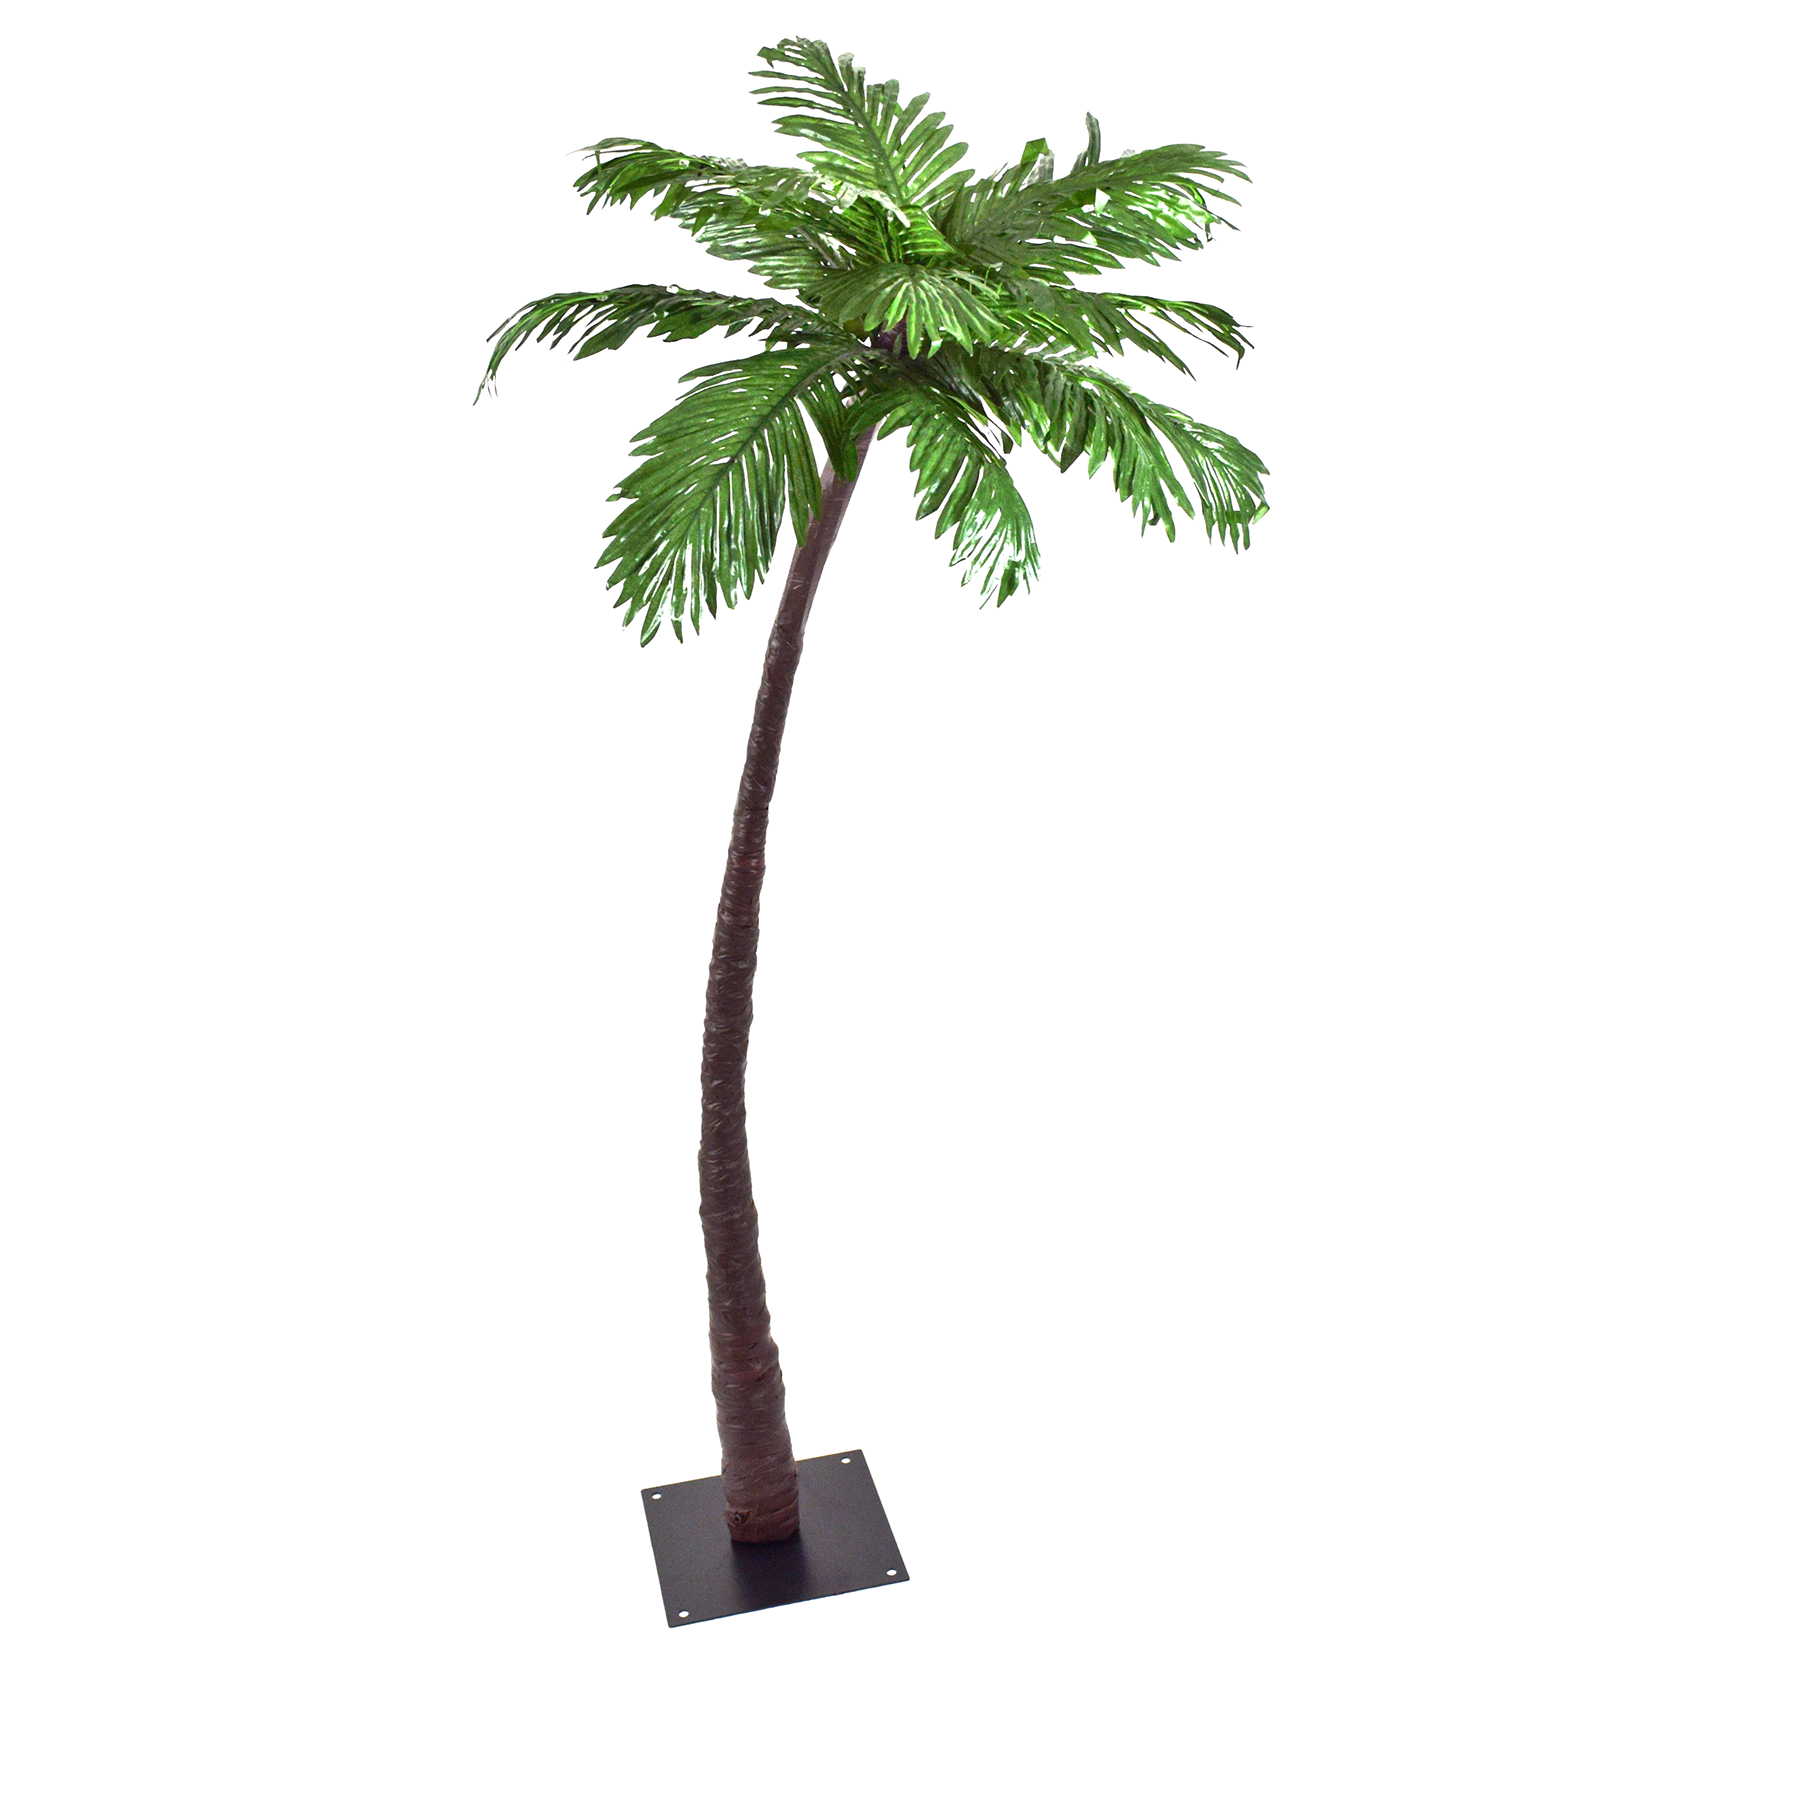 LED Lighted Palm Tree - 5 ft. GC92415030